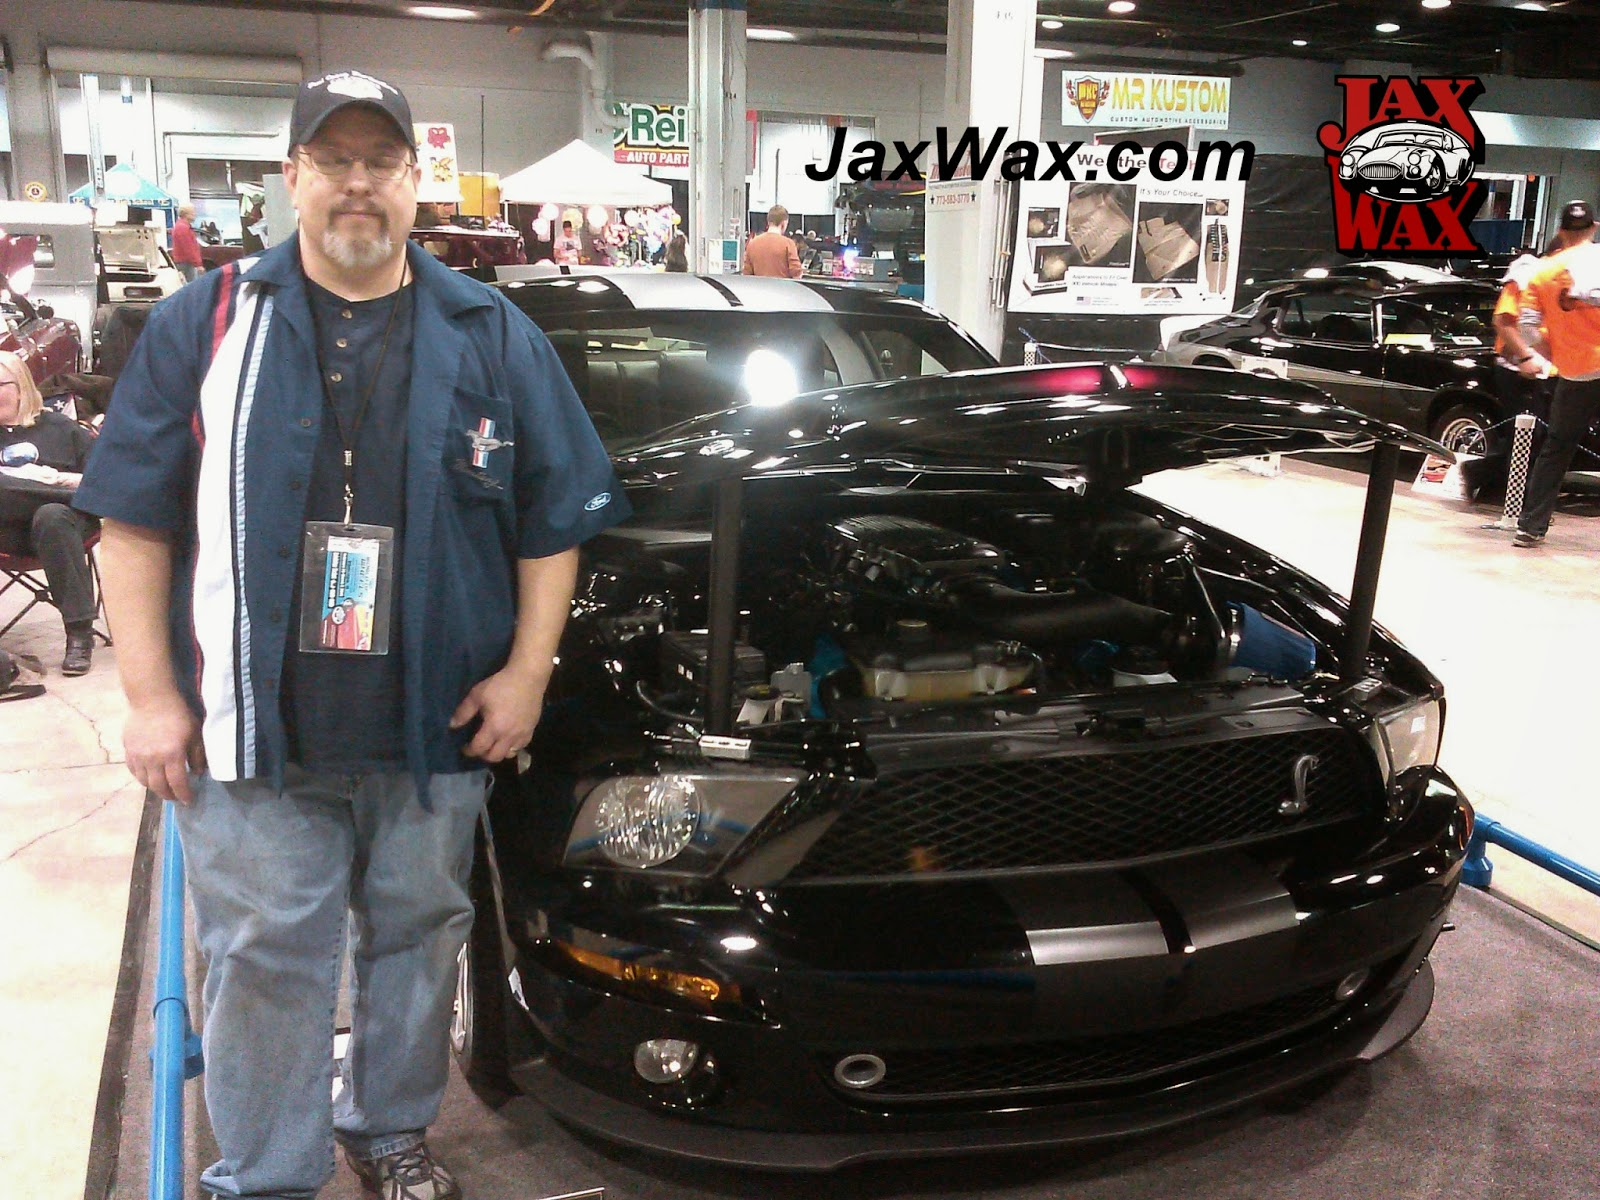 2009 Ford Mustang GT Jax Wax Customer Chicago World of Wheels